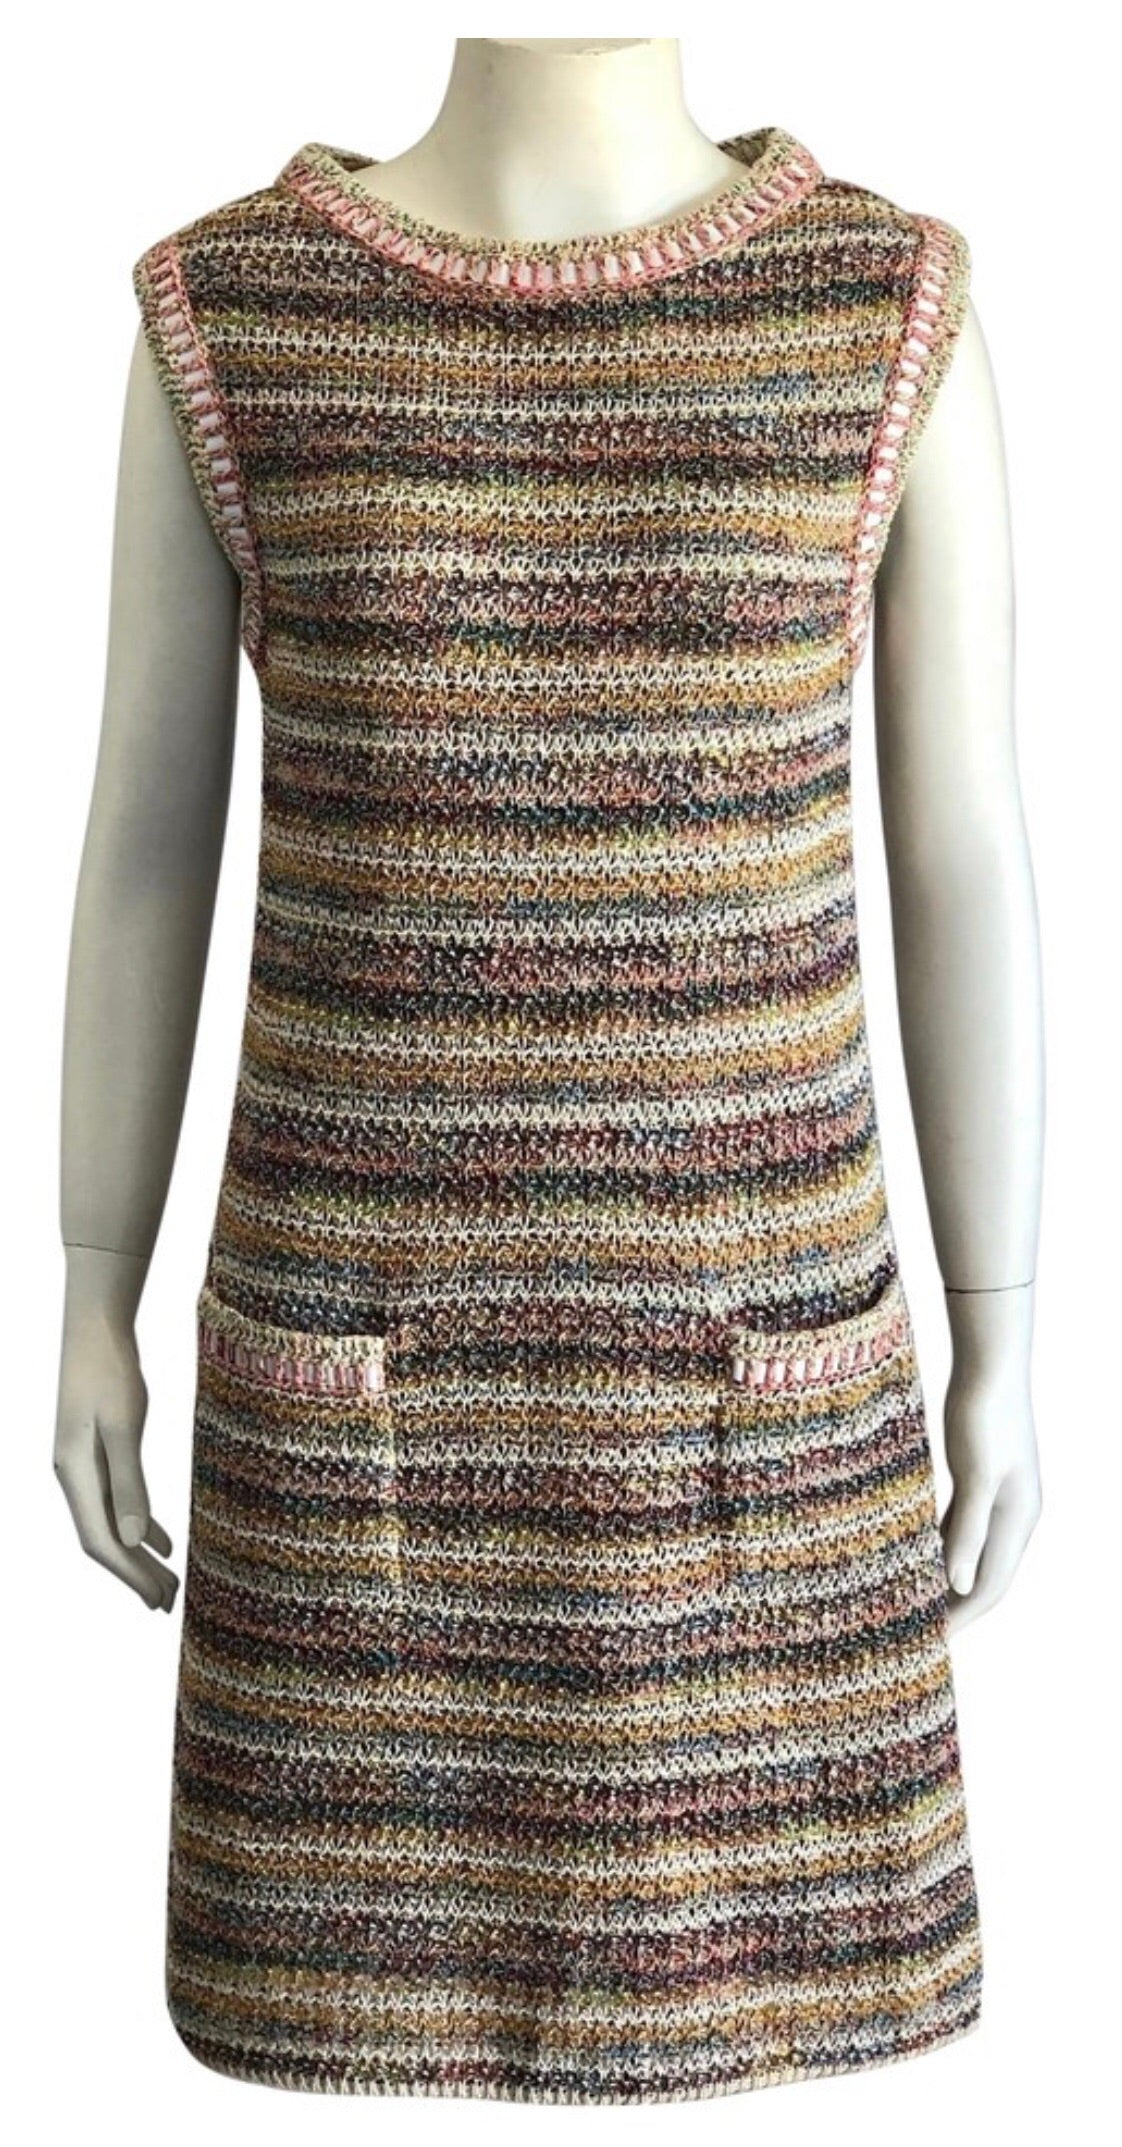 Chanel Multi Color Tweed Shift Dress with Pockets Size 40